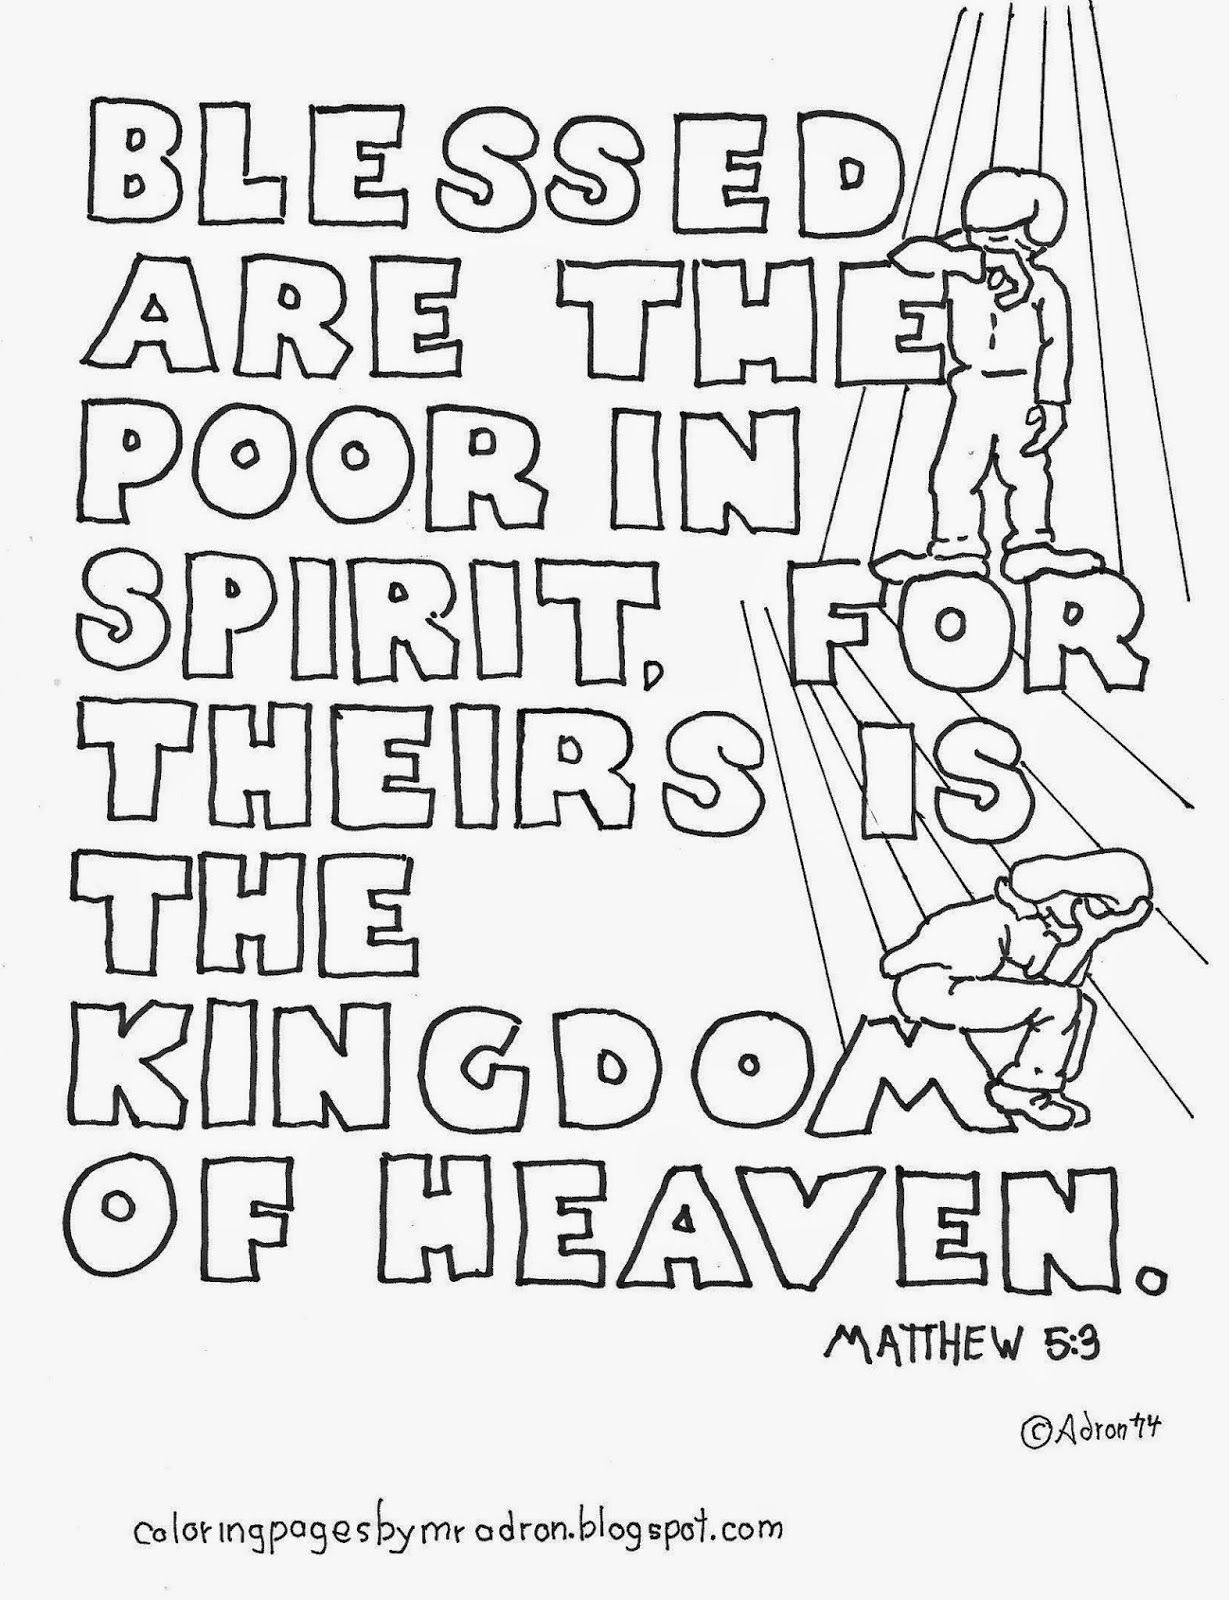 Coloring pages beatitudes - Coloring Pages For Kids By Mr Adron Matthew 5 3 Blessed Are